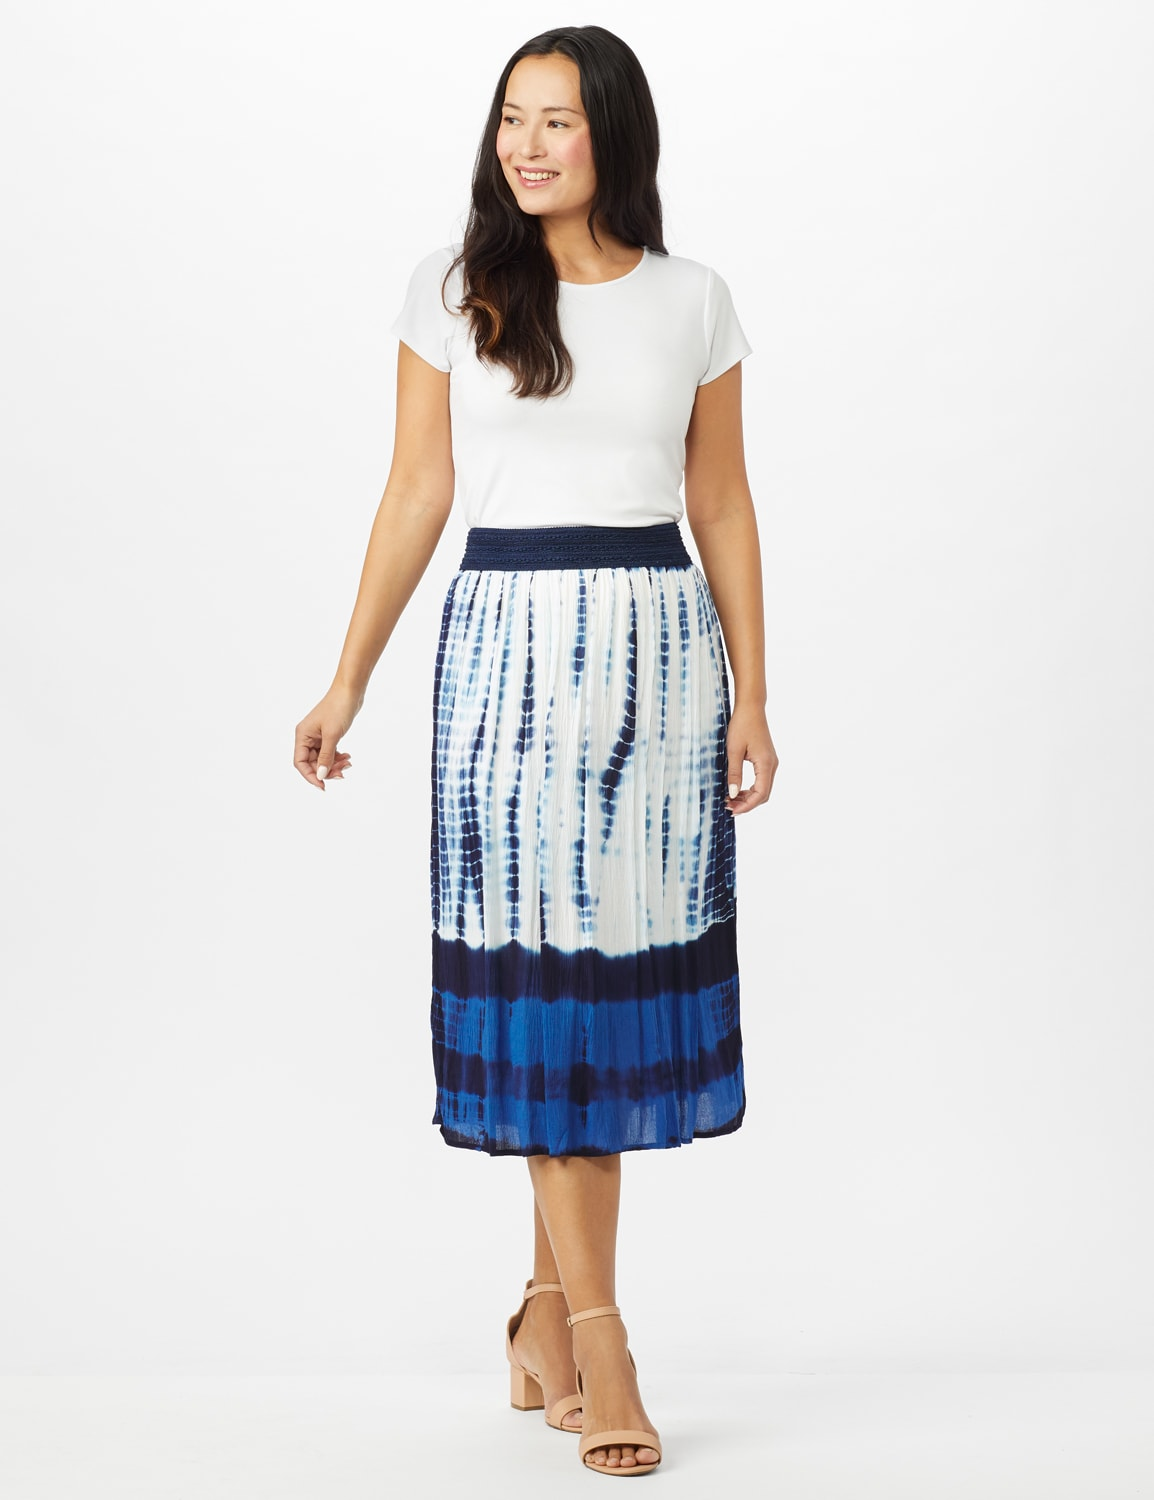 Rayon Gauze Skirt with Decorative Waistband - Blue/white - Front